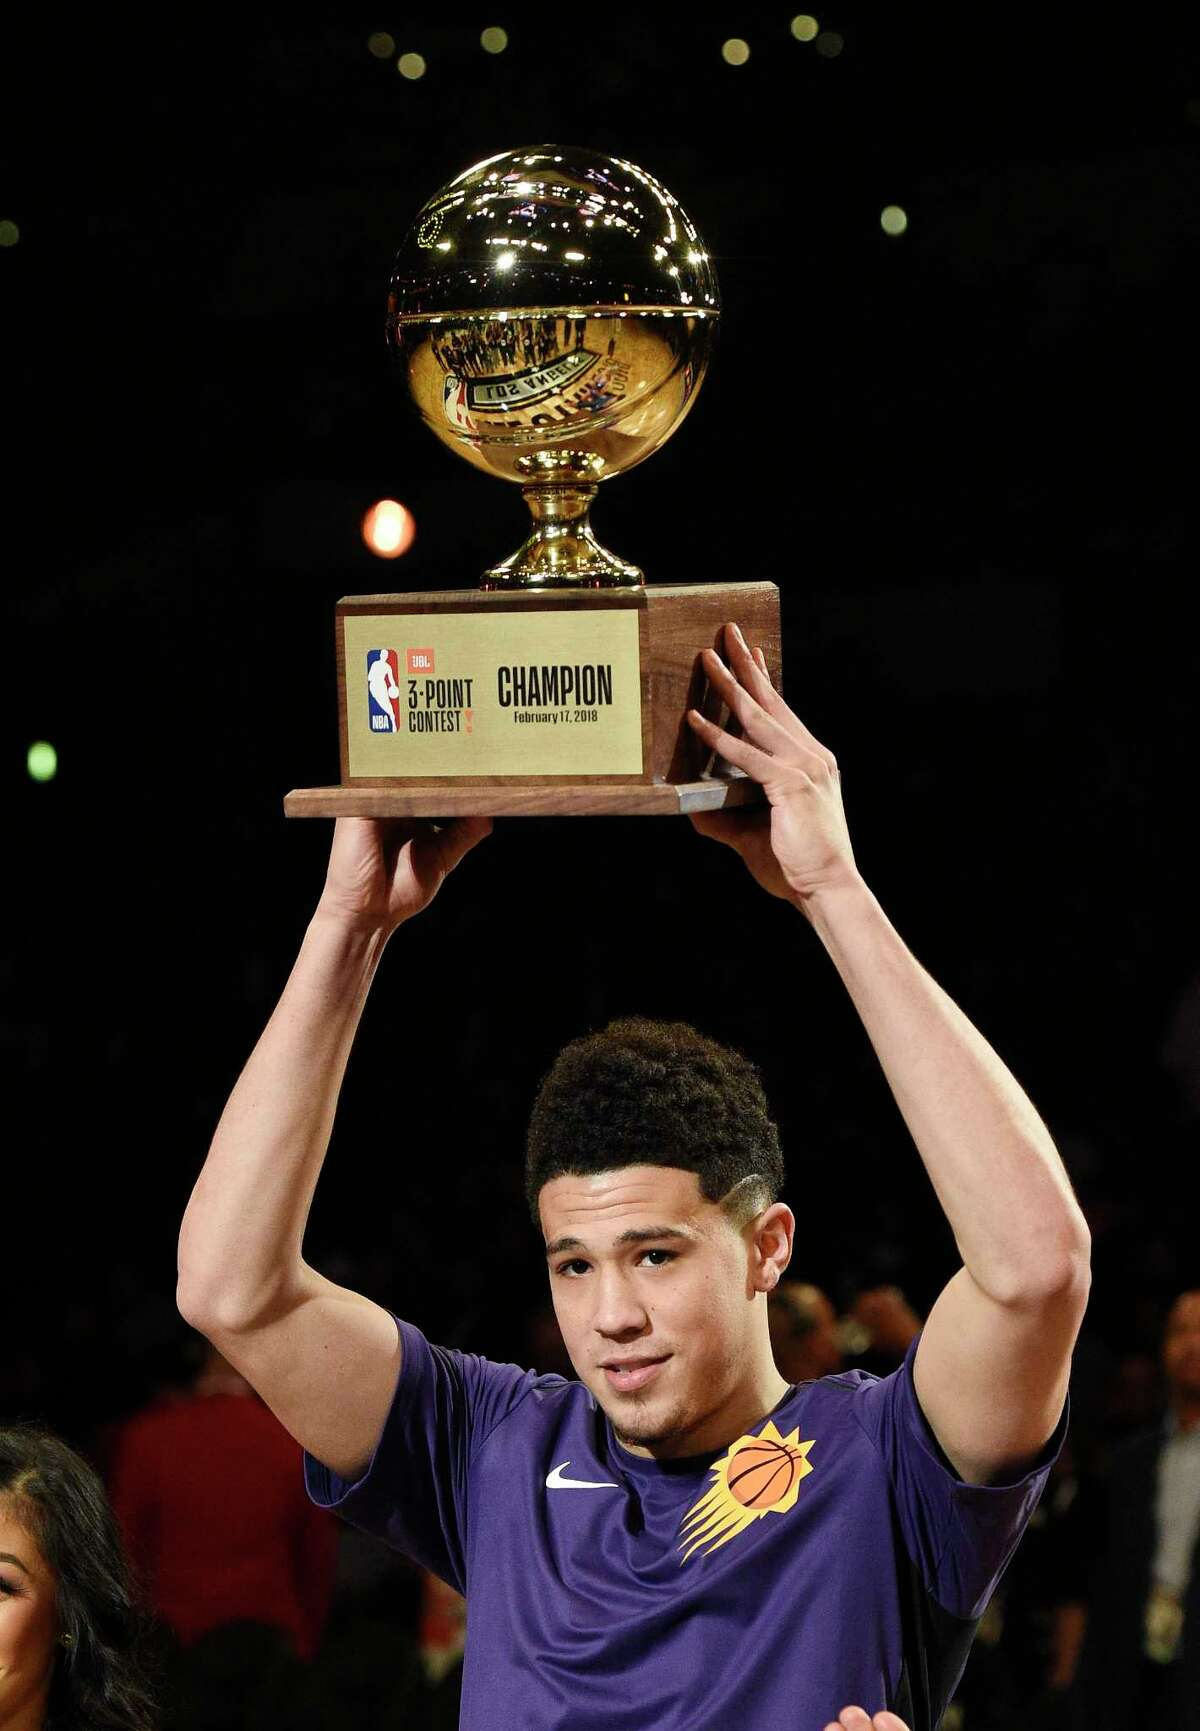 Phoenix Suns' Devin Booker holds up his trophy after winning the NBA All-Star basketball Three Point contest, Saturday, Feb. 17, 2018, in Los Angeles. (AP Photo/Chris Pizzello)